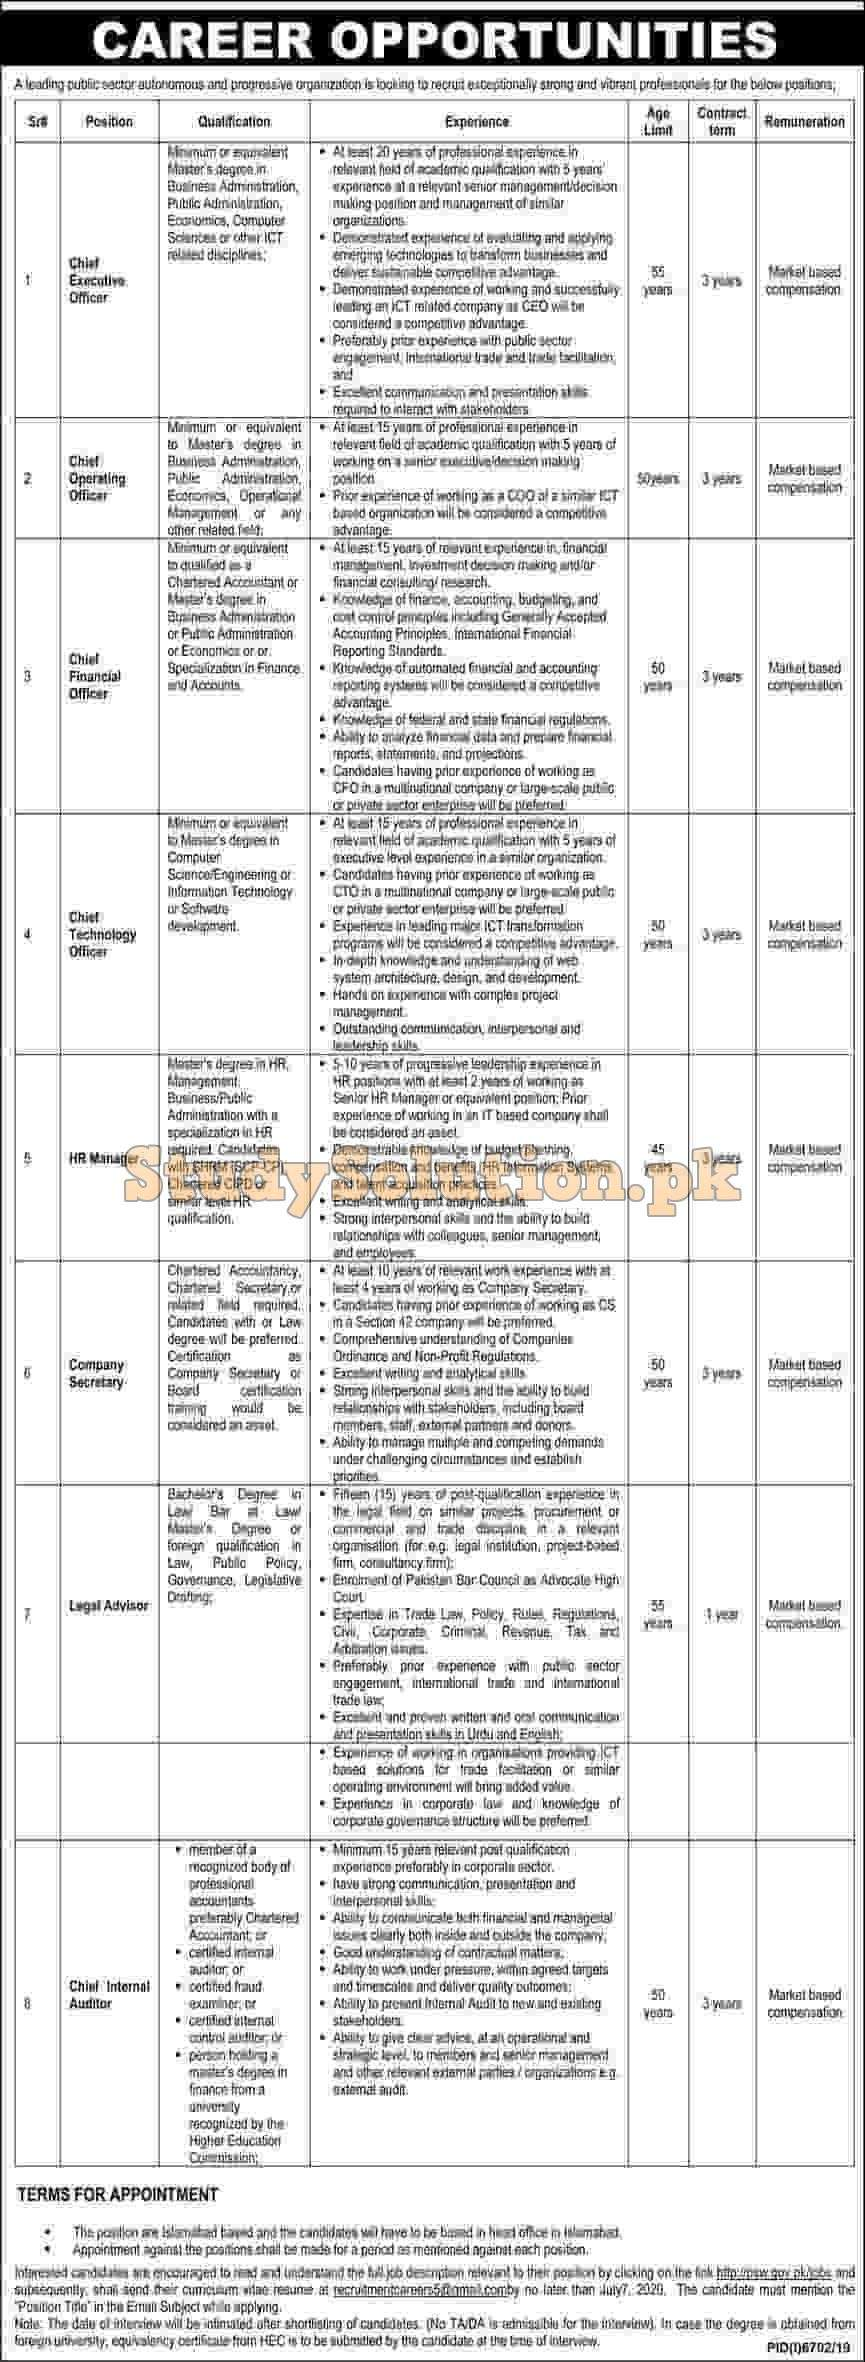 PSW Public Sector Organization Latest Jobs 2020